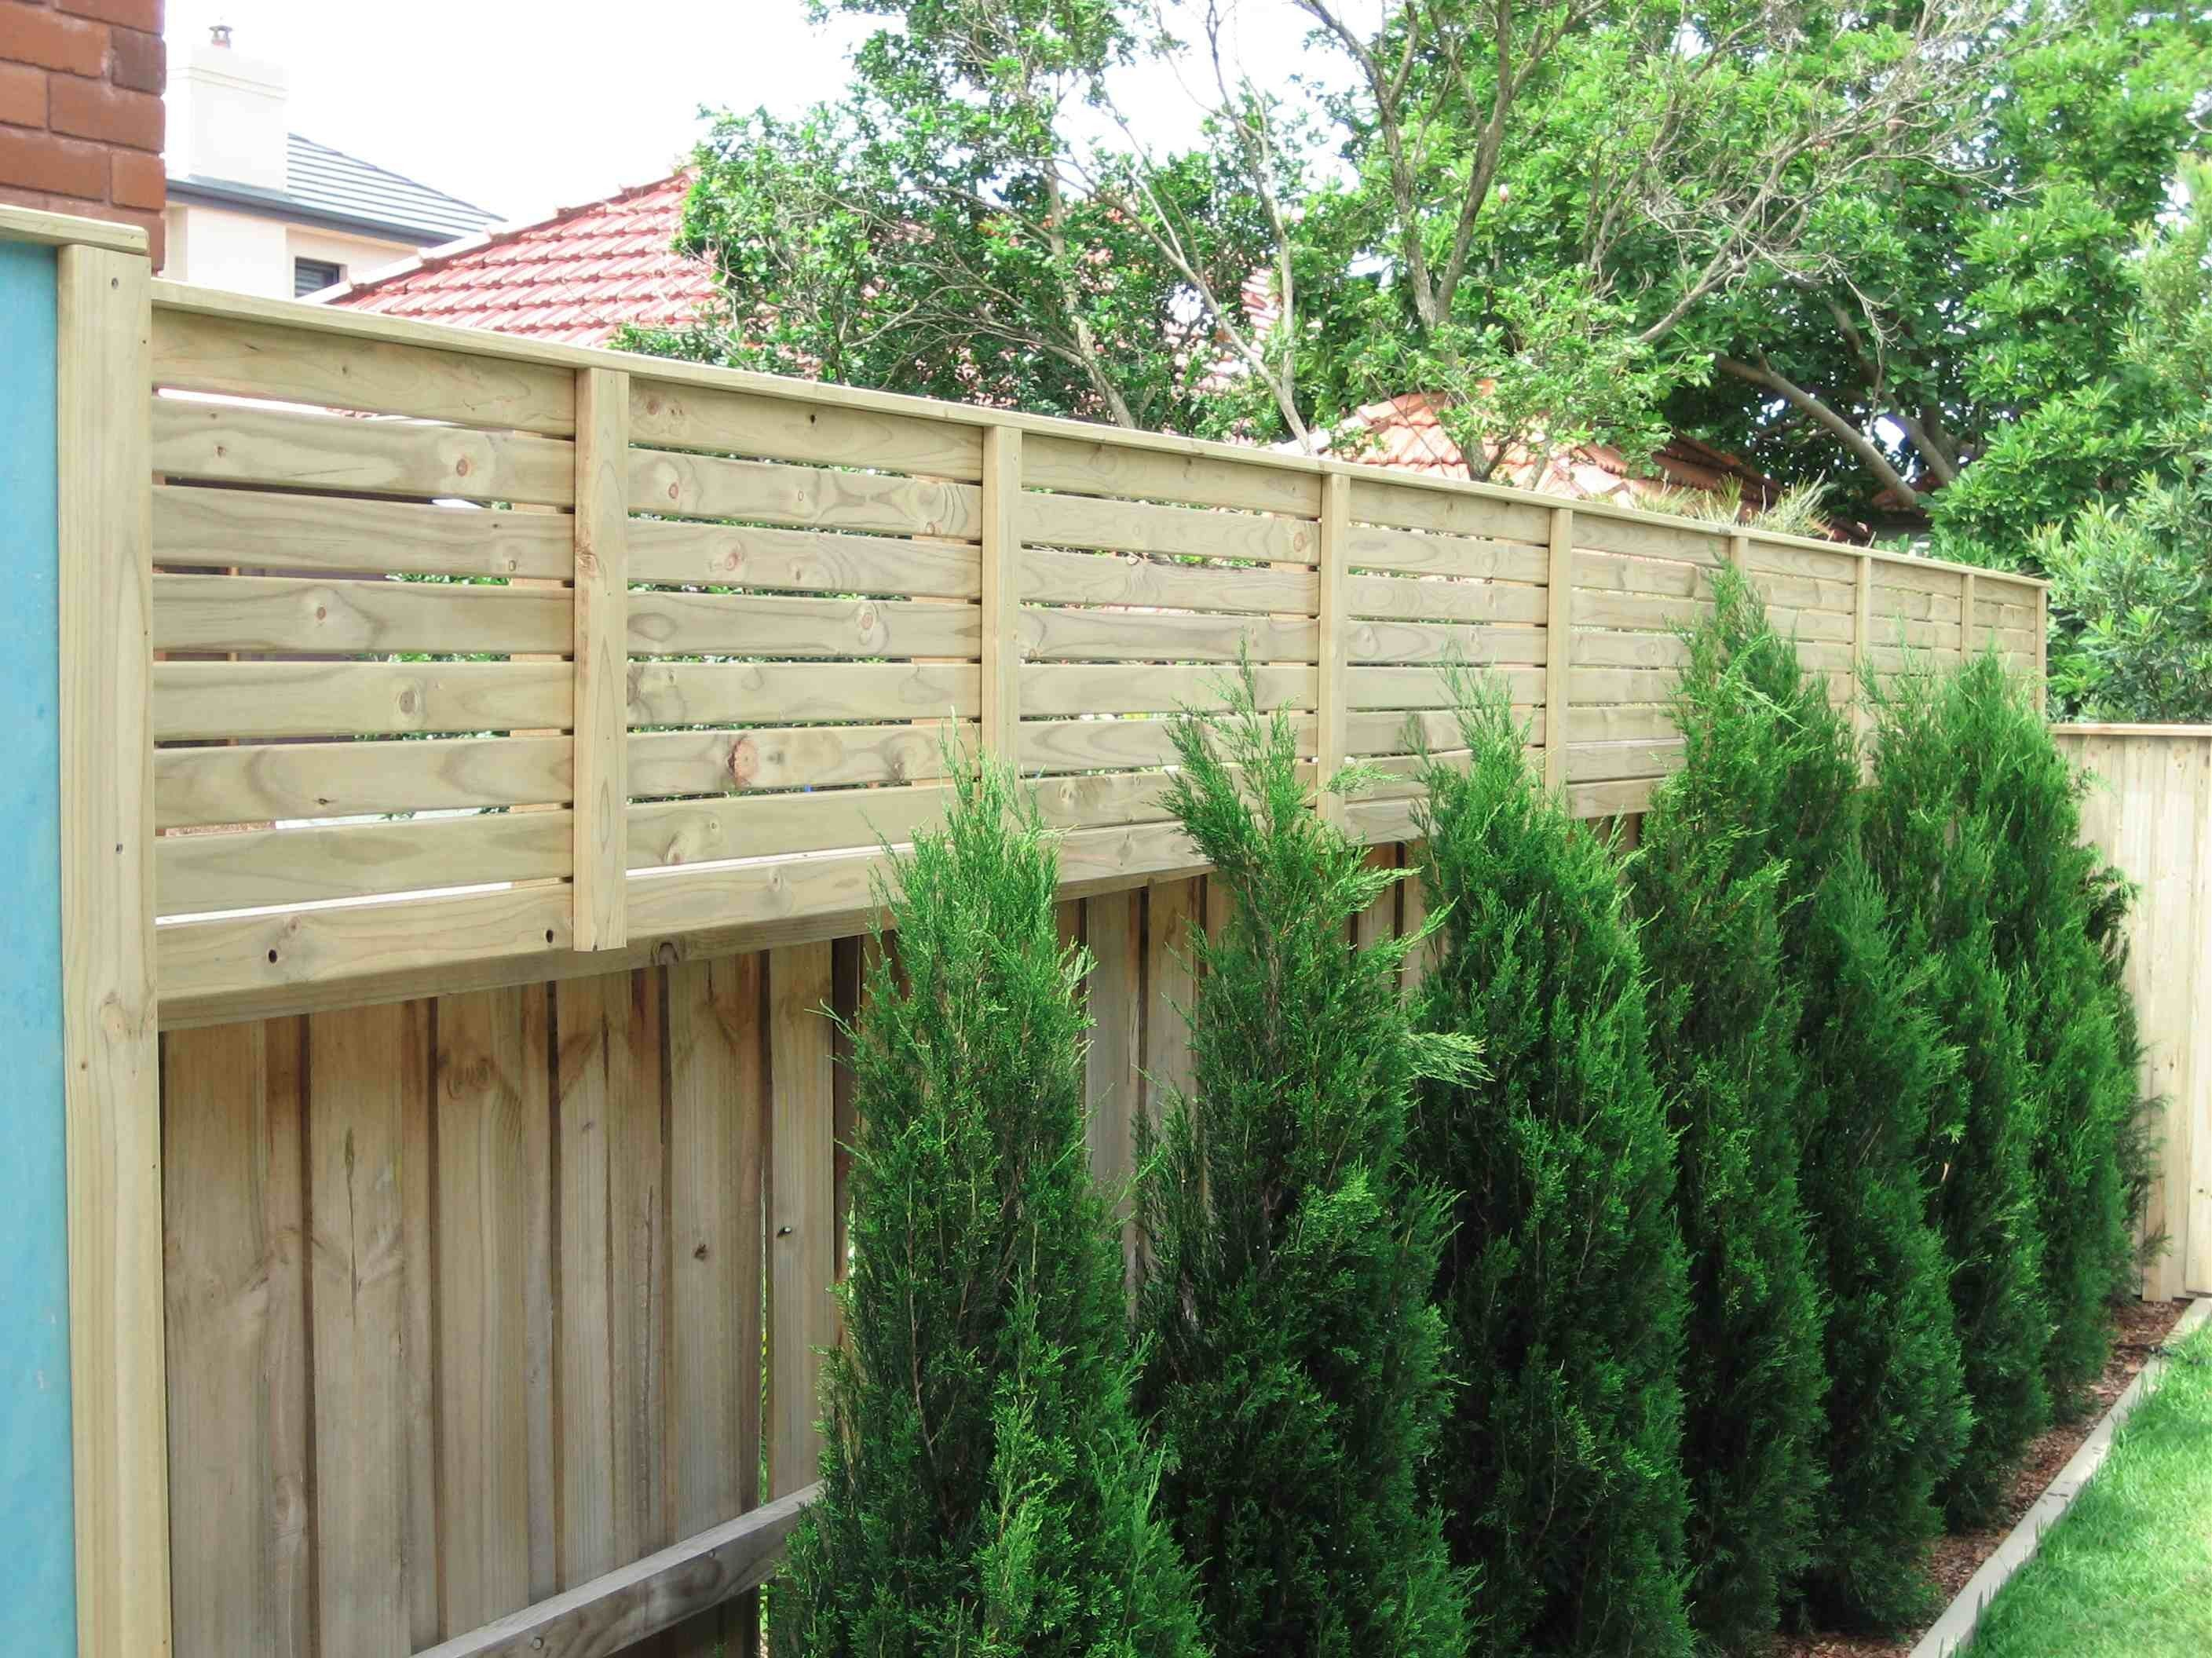 privacy screen against fence - Google Search